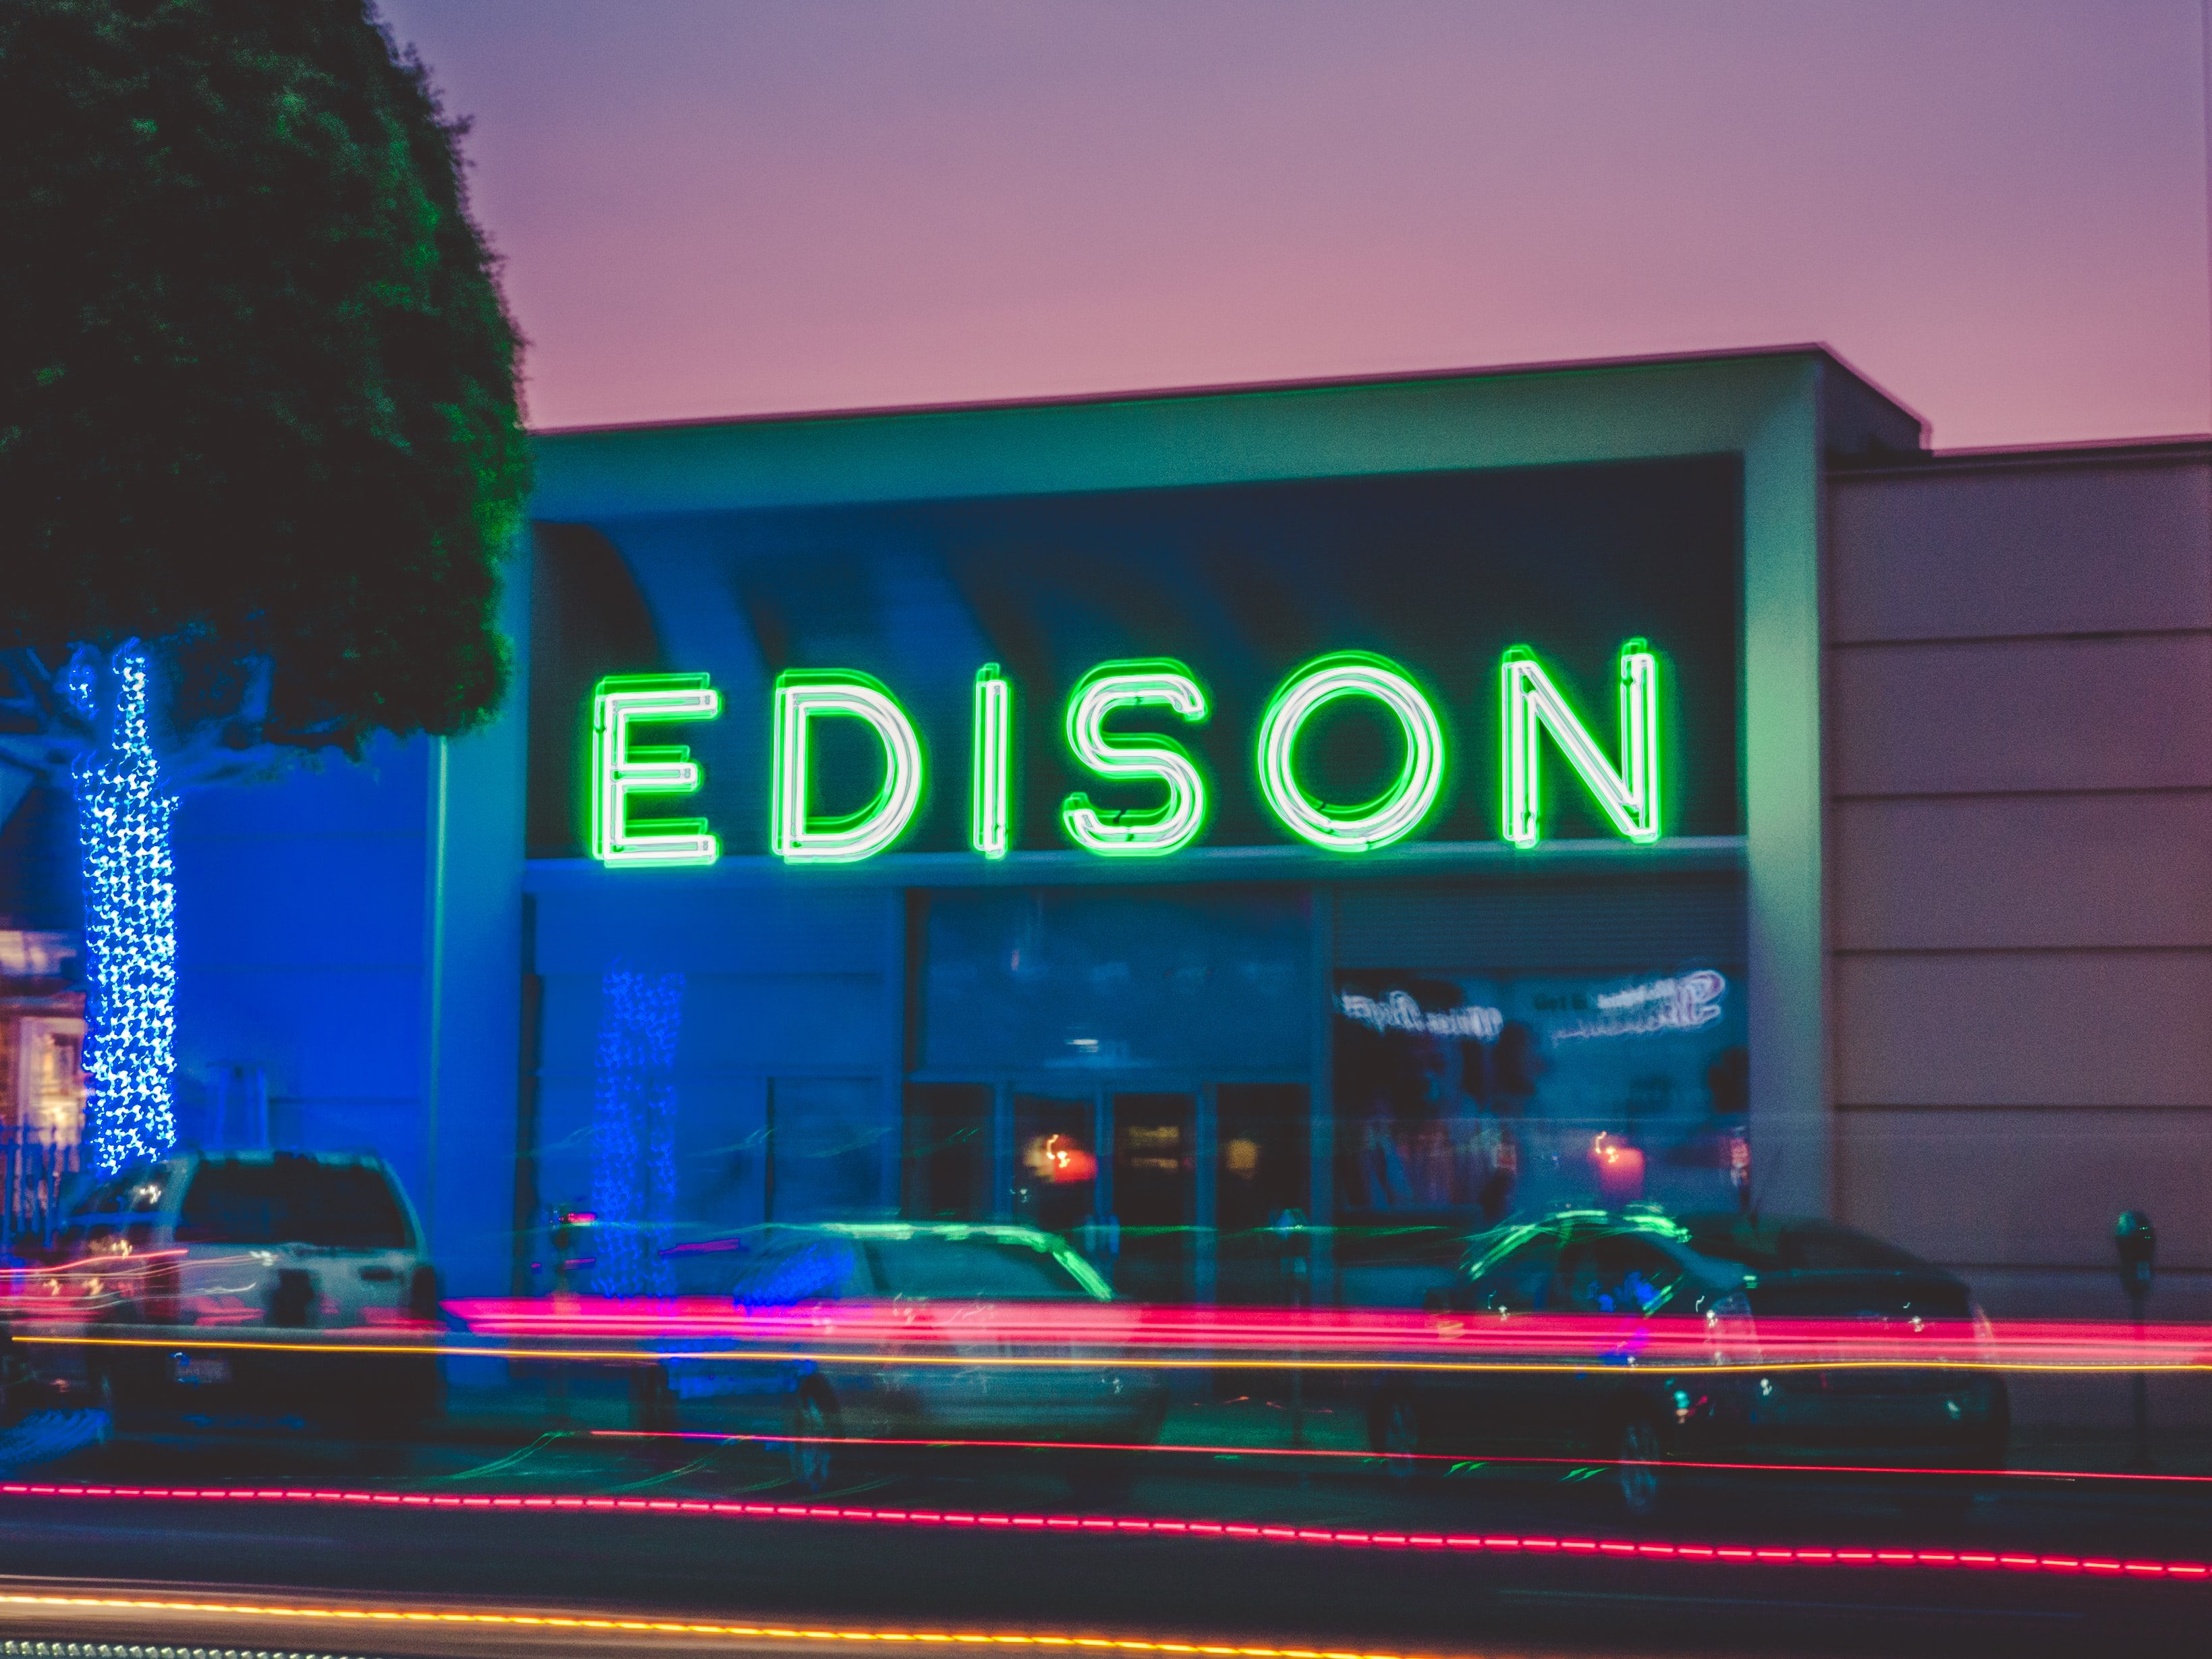 three vehicles parked in front of Edison building